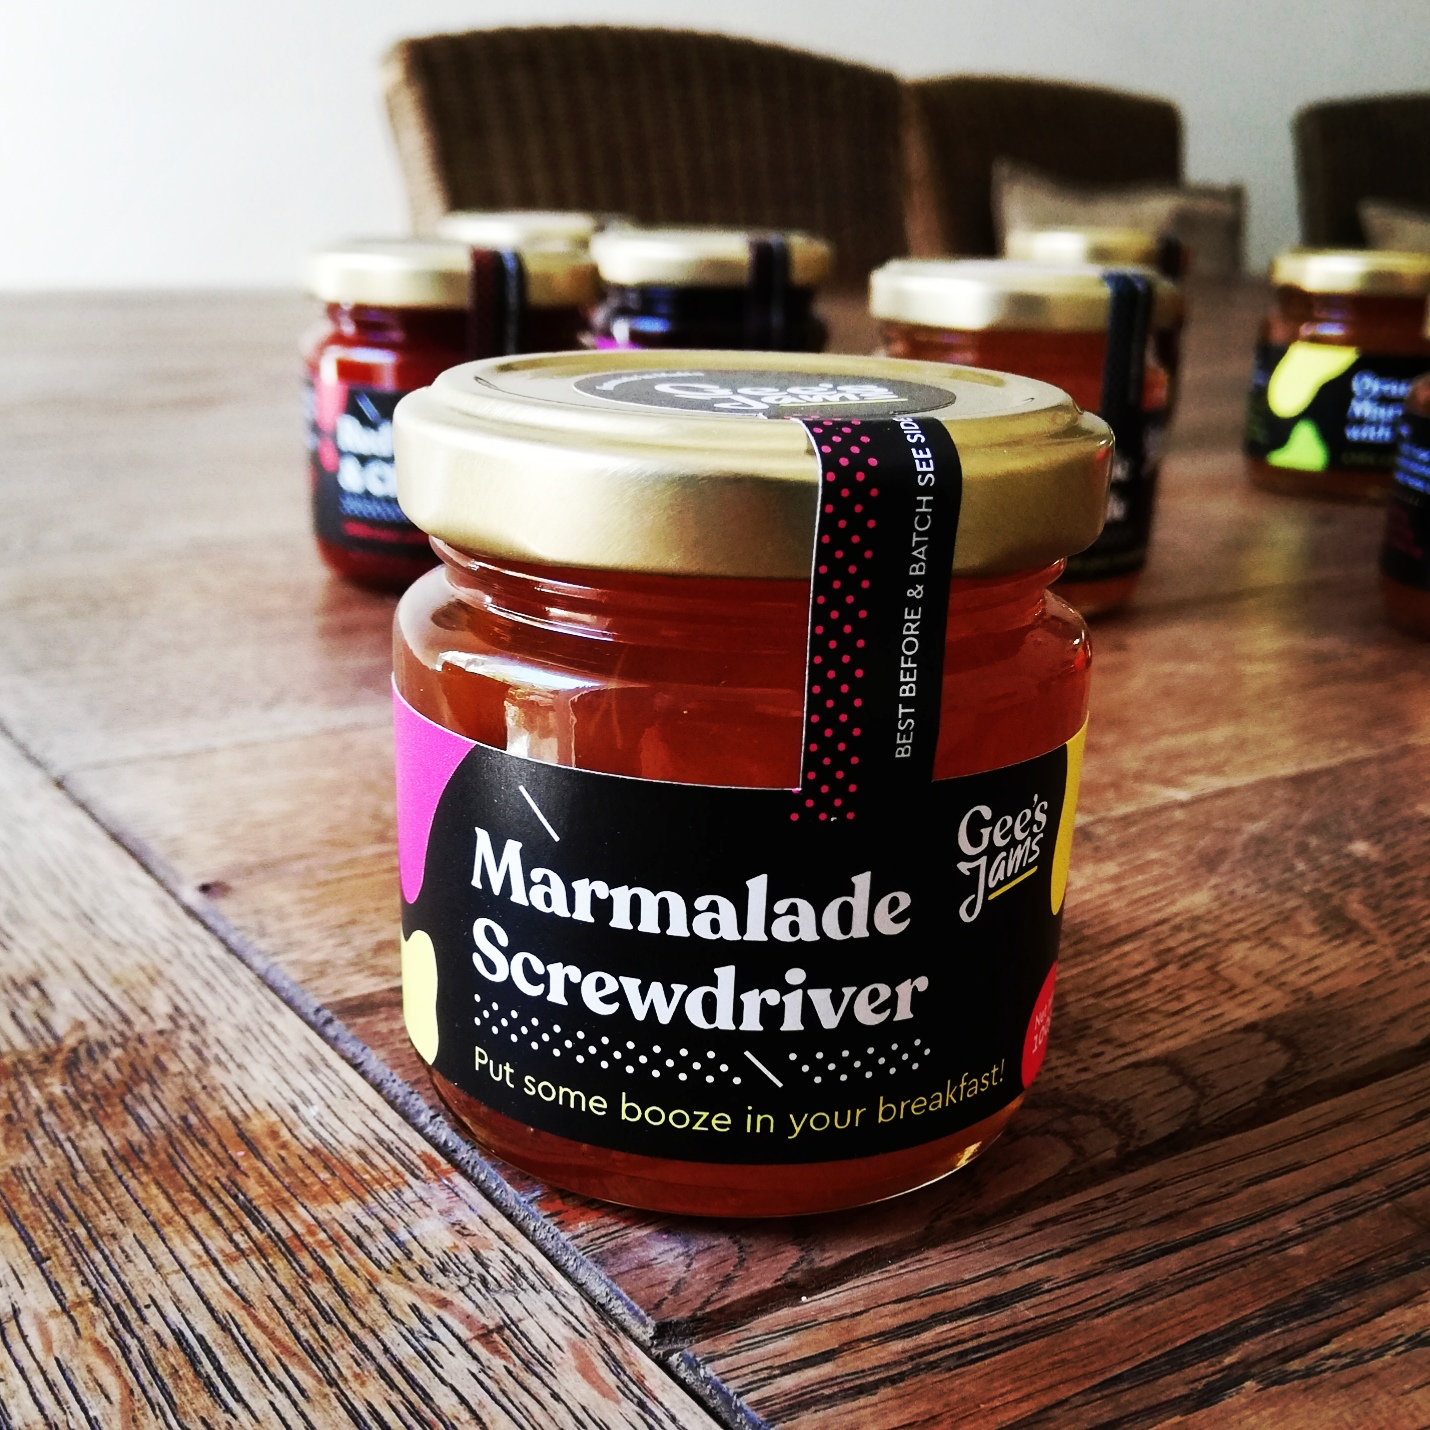 Homemade Marmalade Screwdriver - G's